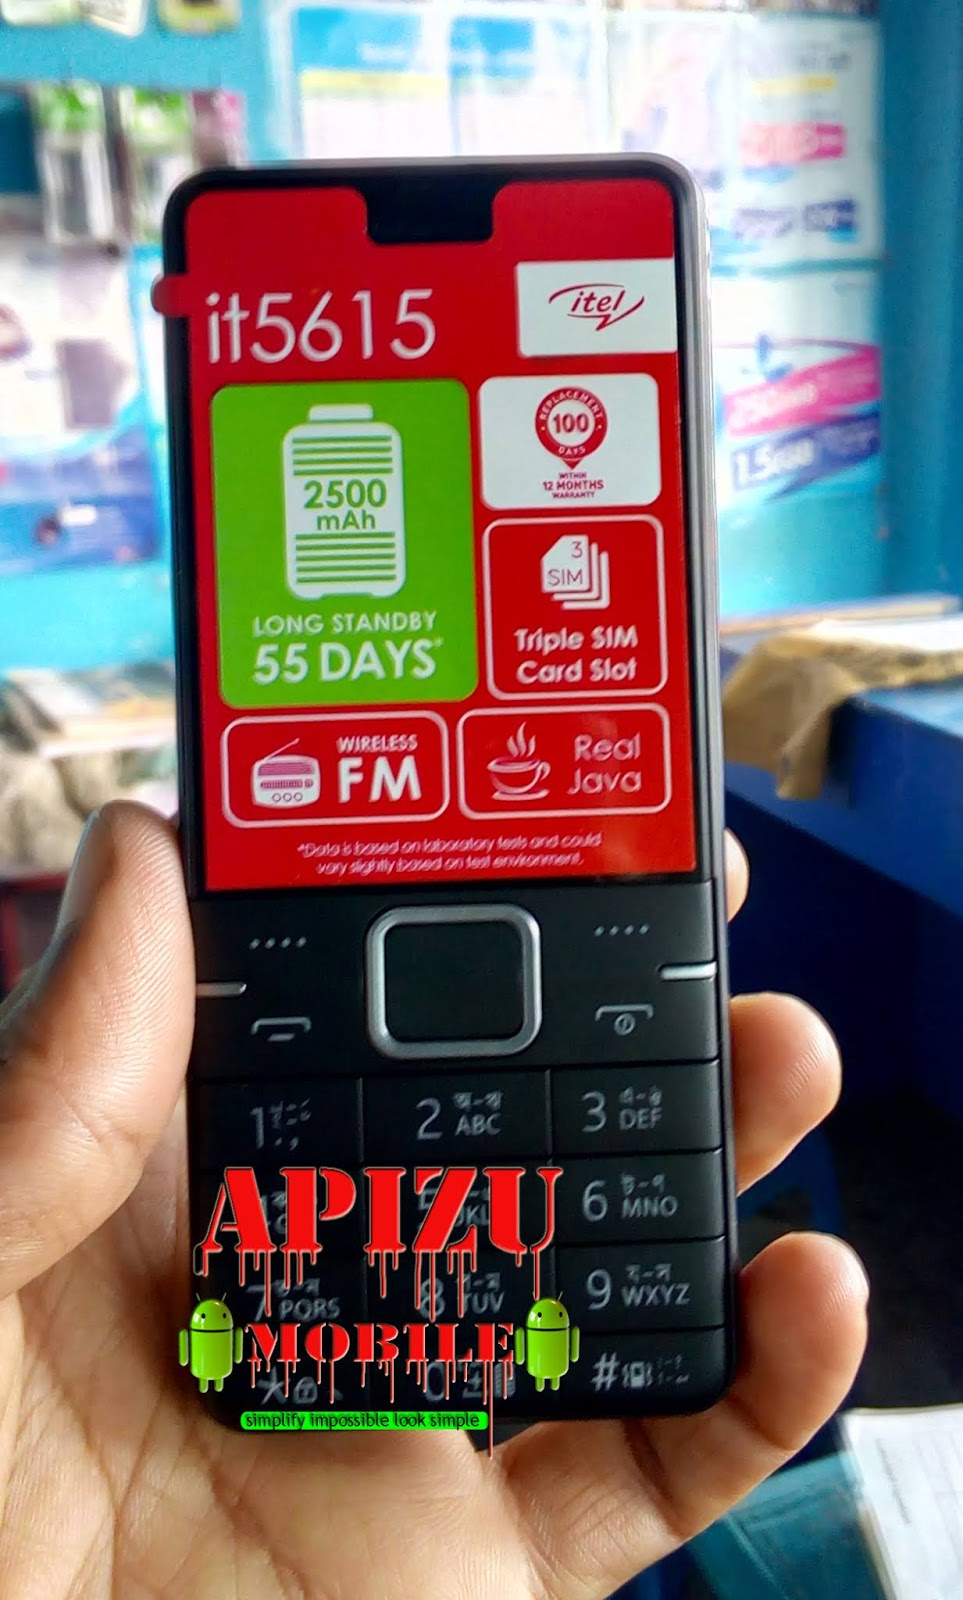 DOWNLOAD ITEL 5615 PAC FIRMWARE: TESTED - APIZU MOBILE